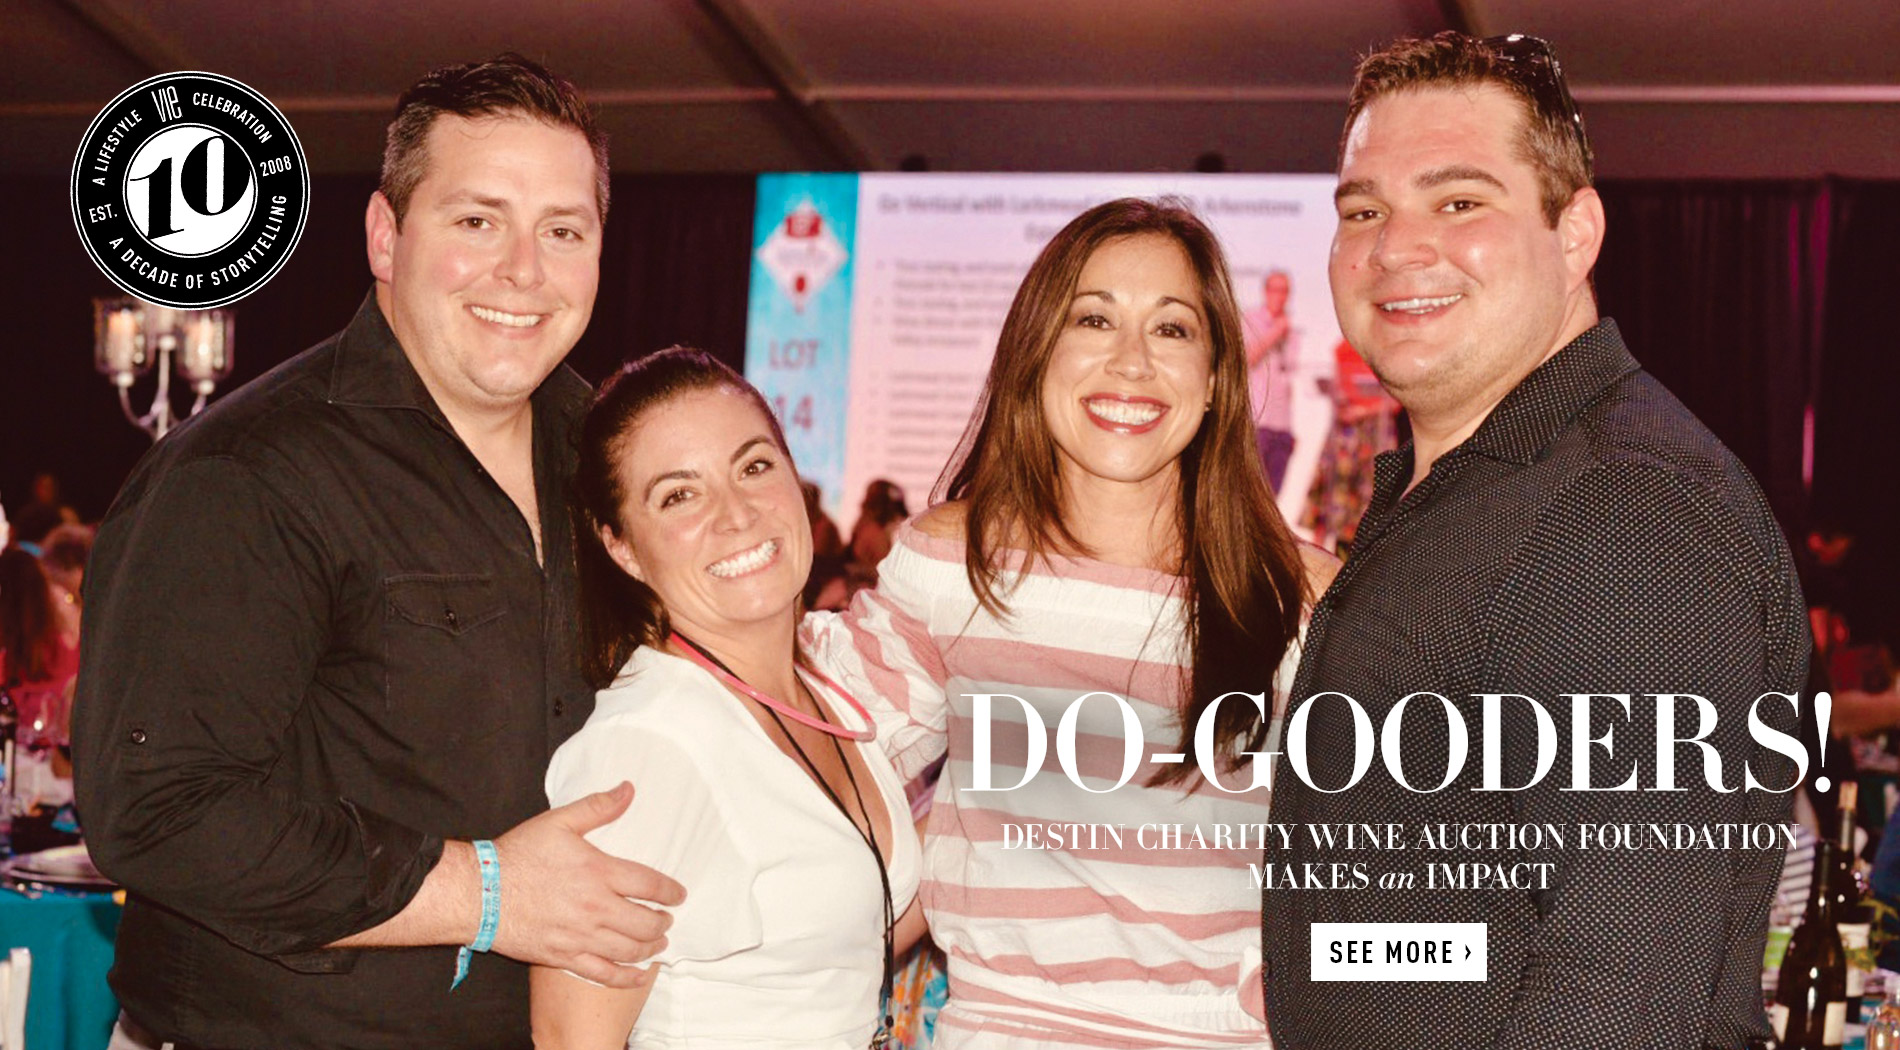 VIE Magazine - The Goodness Issue - November 2018 - Destin Charity Wine Auction Foundation